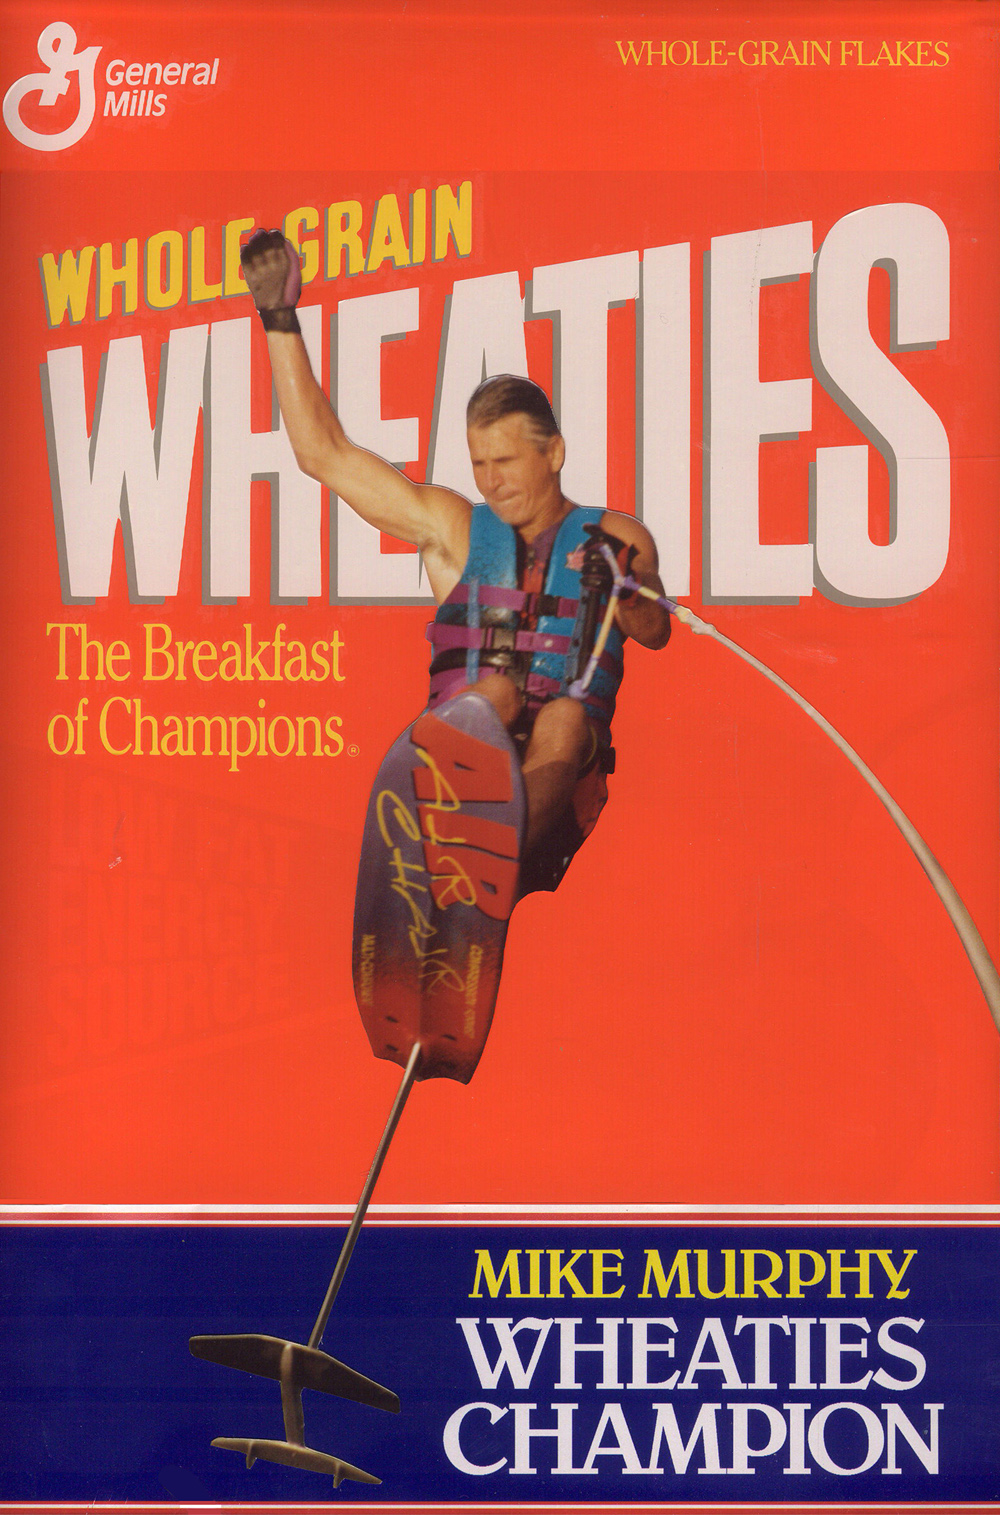 adventures-water-skiing-hydrofoiling-1995-mike-murphy-wheaties-champion-box